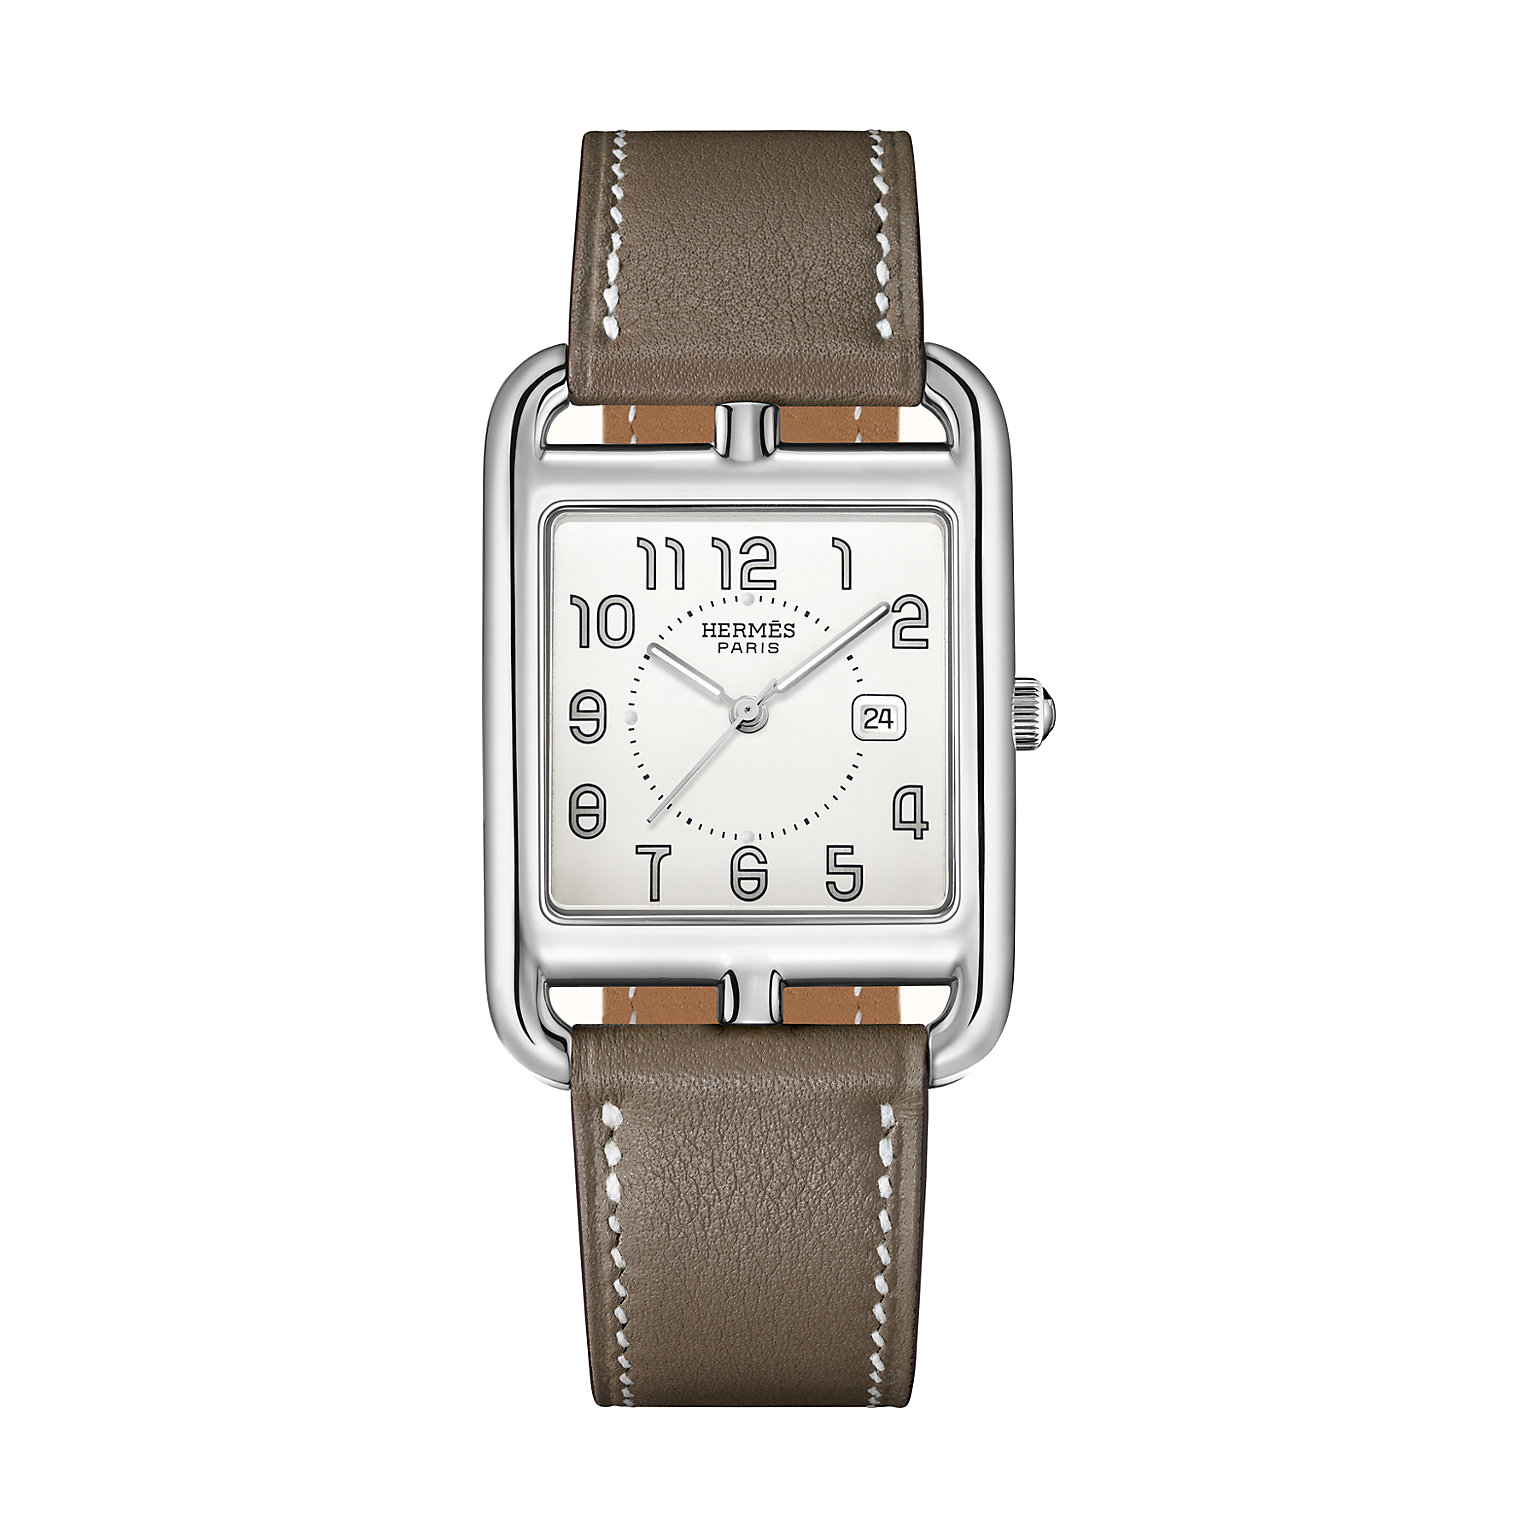 Hermès-cape-cod-29-x-29mm-Hall-of-Time-043640WW00